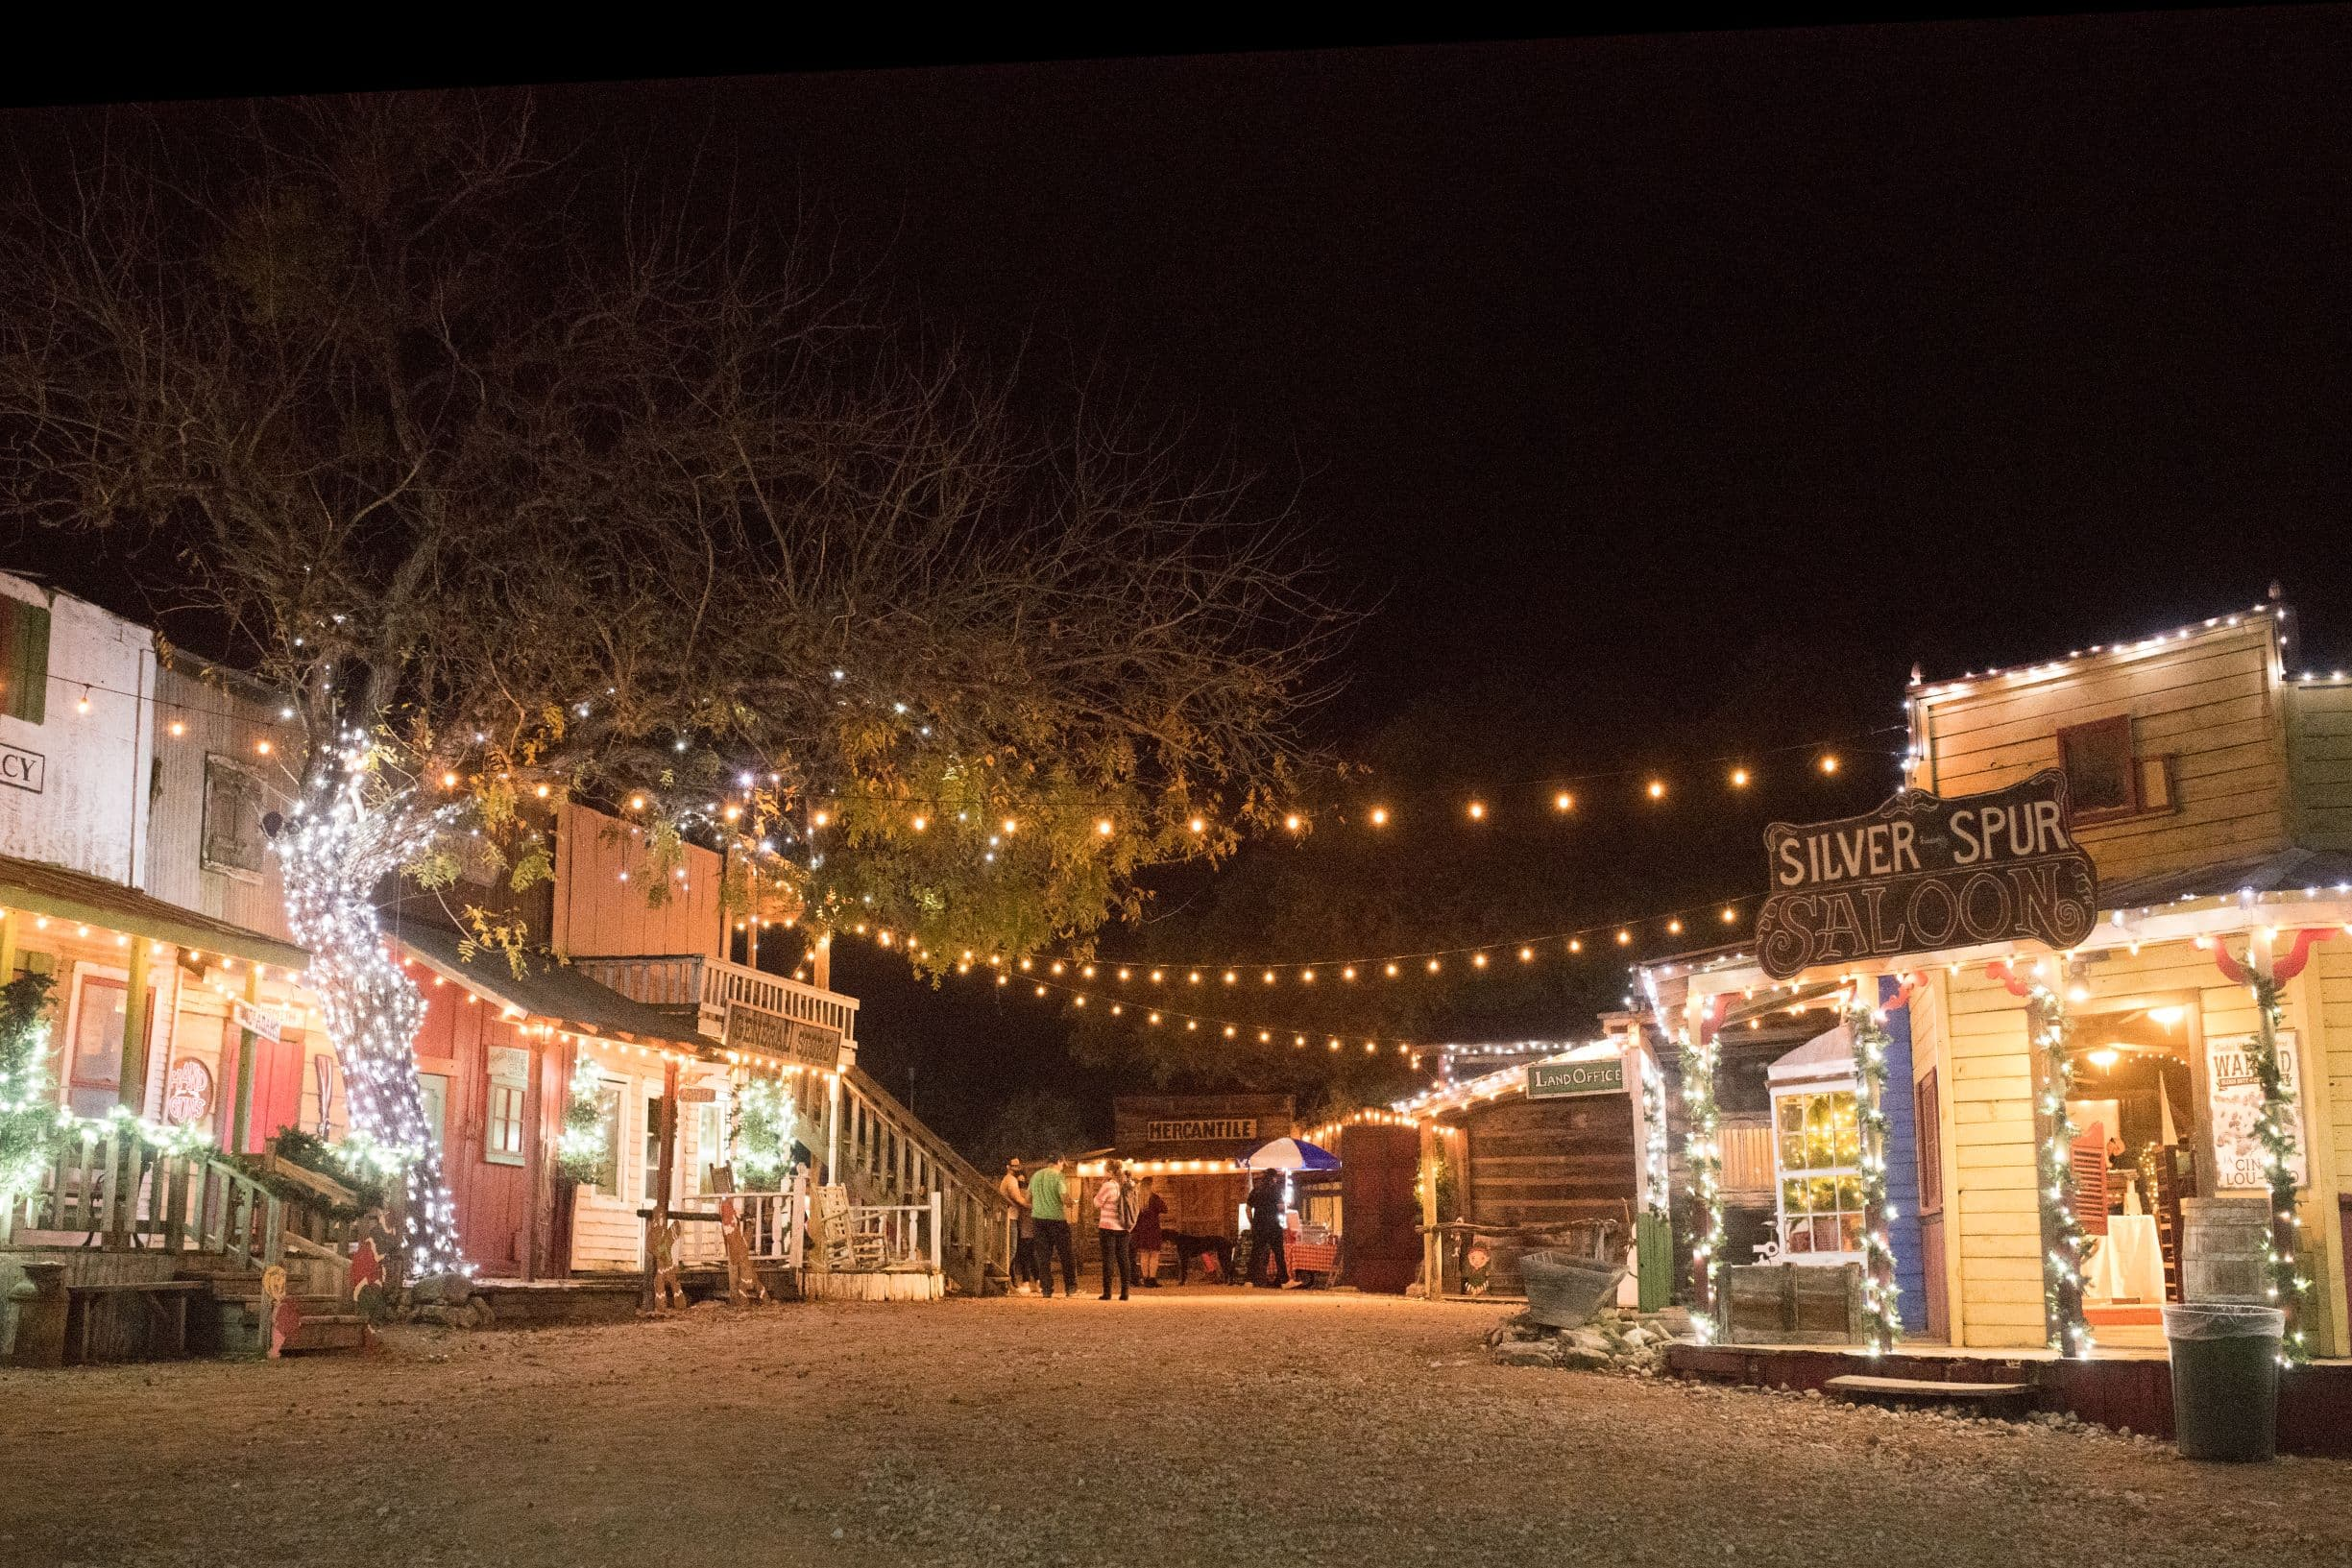 San Antonio Christmas Lights | Best Christmas Lights in San Antonio | Old west Christmas Light Fest at Enchanted Springs Ranch